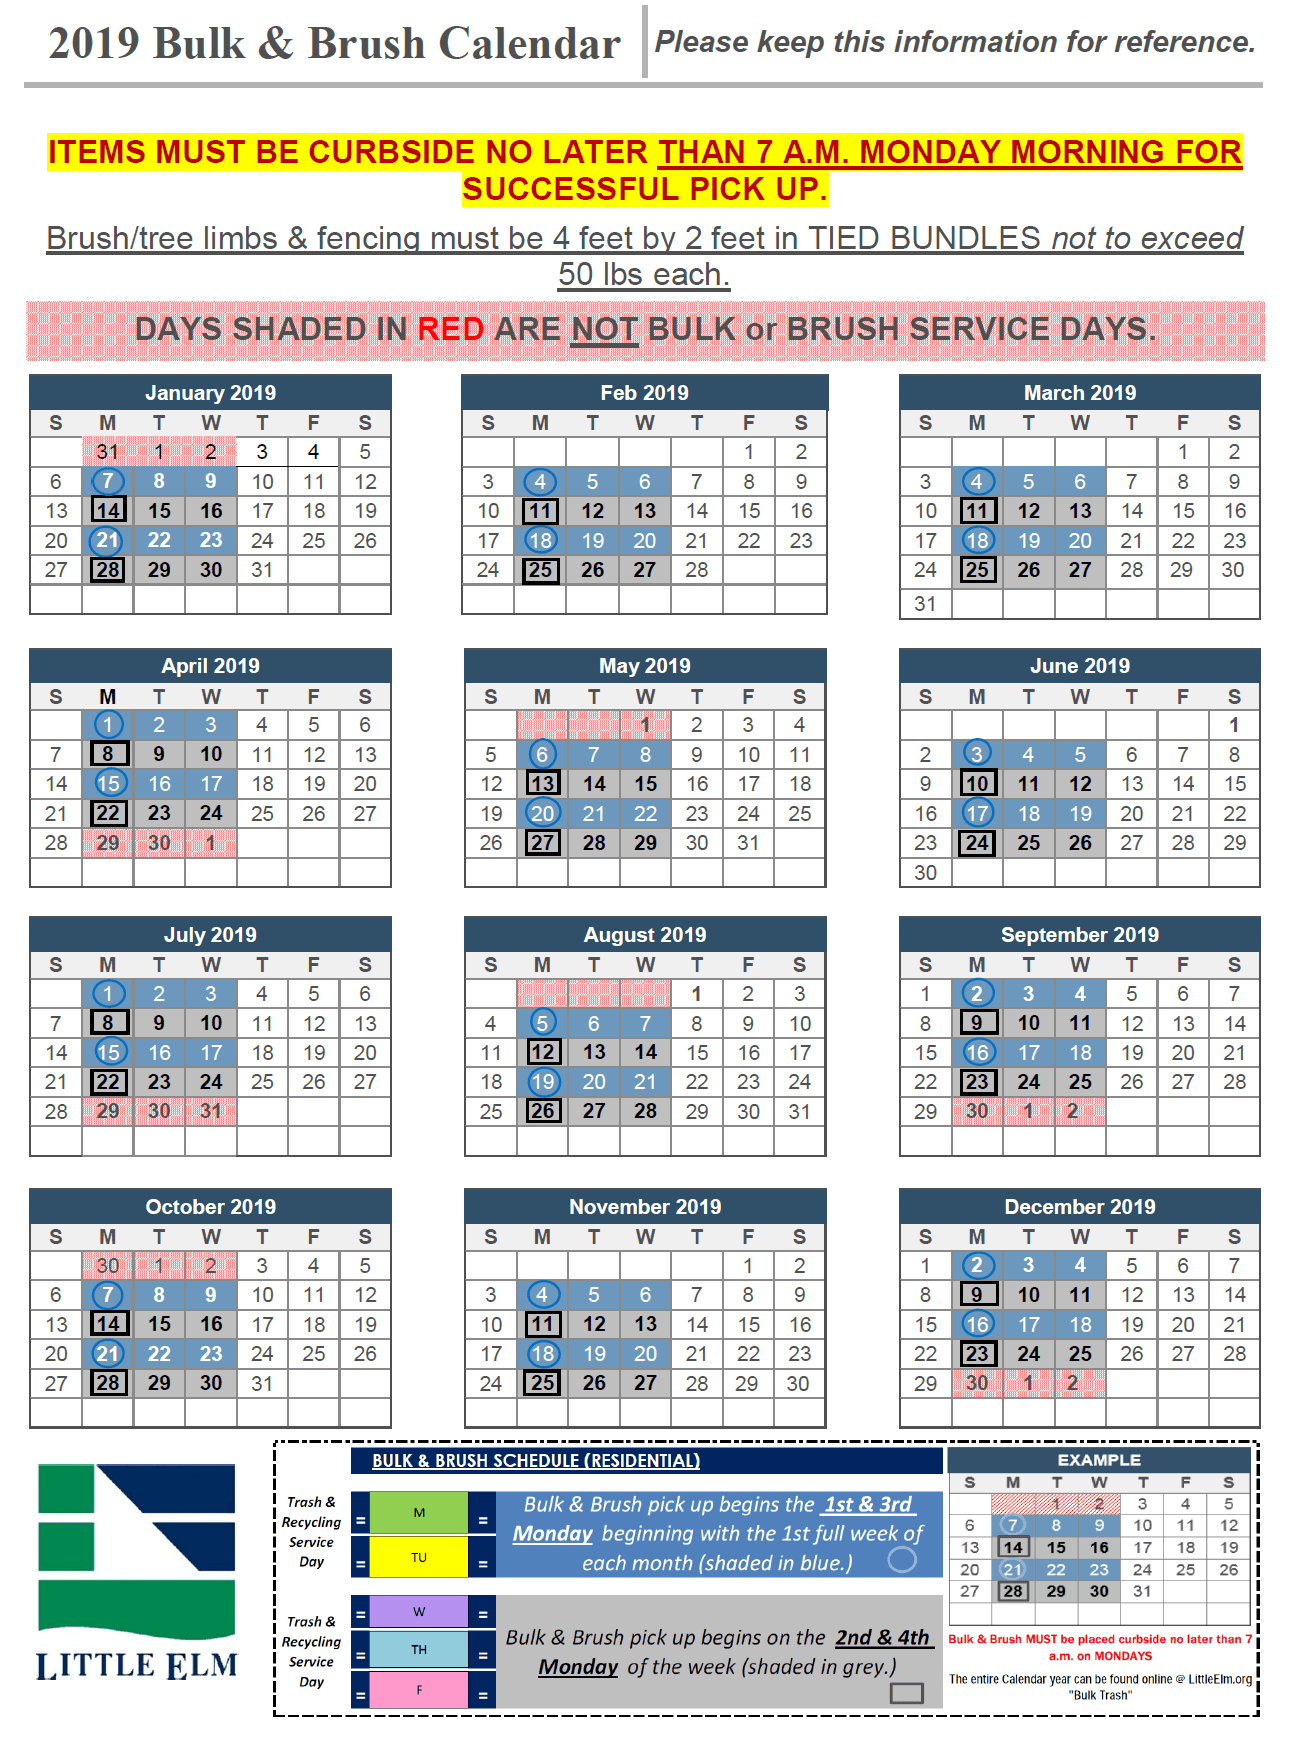 Bulk and Brush Services: Calendars, Maps, and FAQ | Town of Little